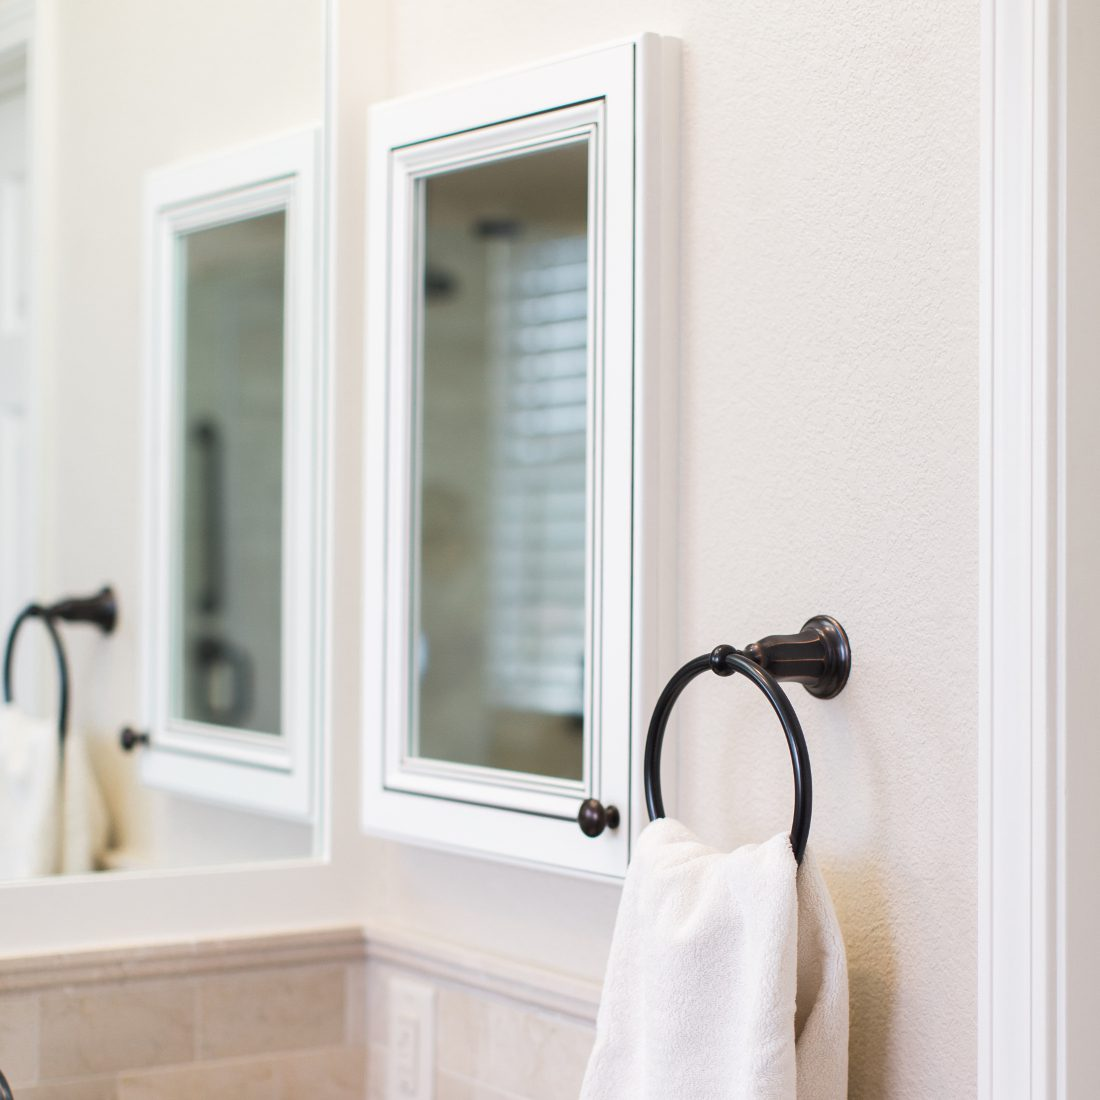 Bathroom Remodeling Checklist | Case San Jose